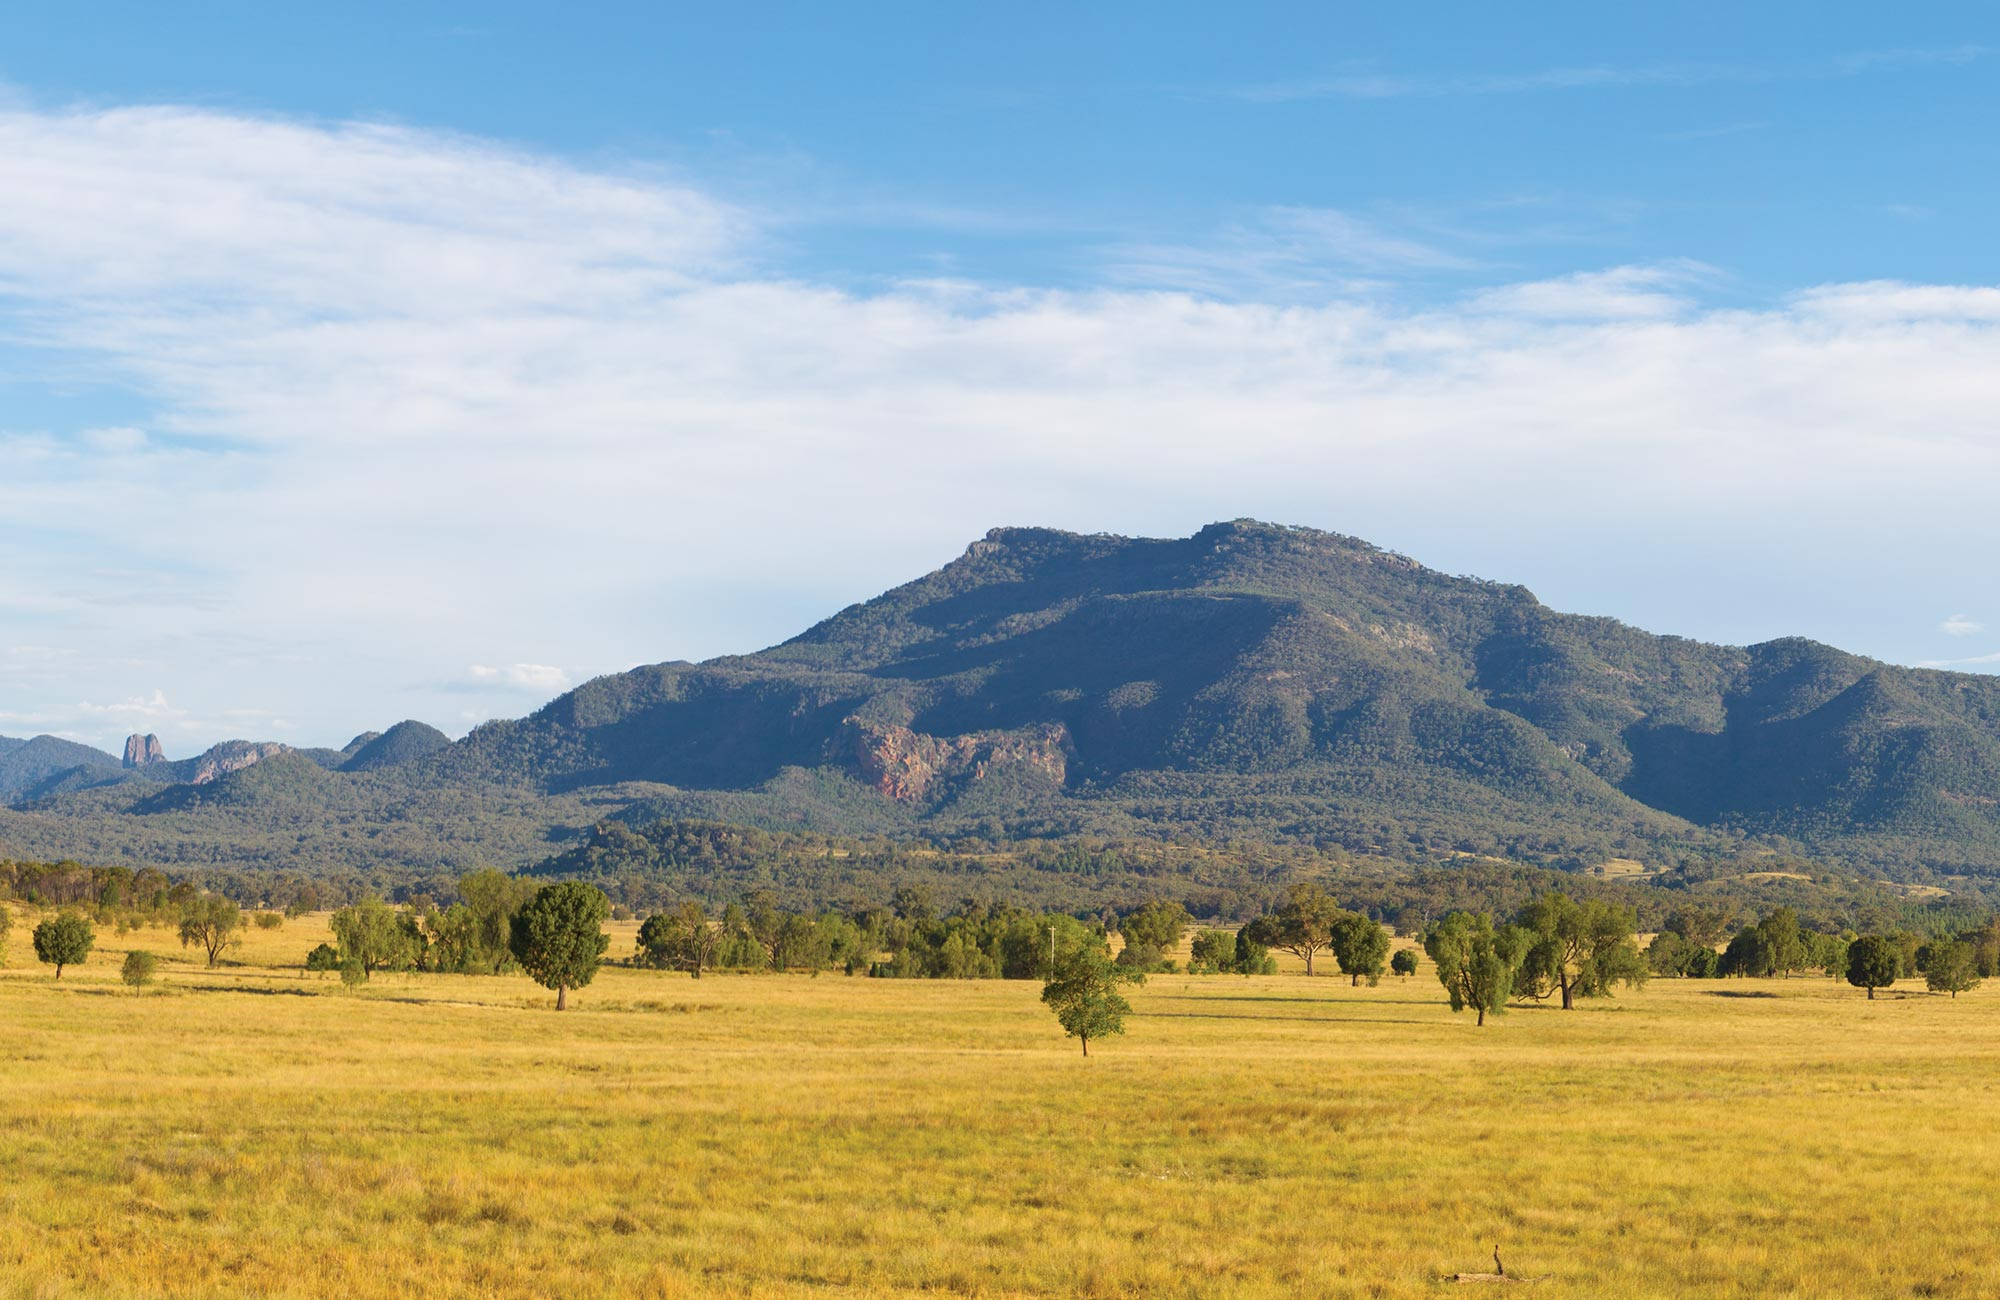 Coonabarabran-Warrumbungle National Park-Tooraweenah, Warrumbungle National Park. Photo: Rob Cleary